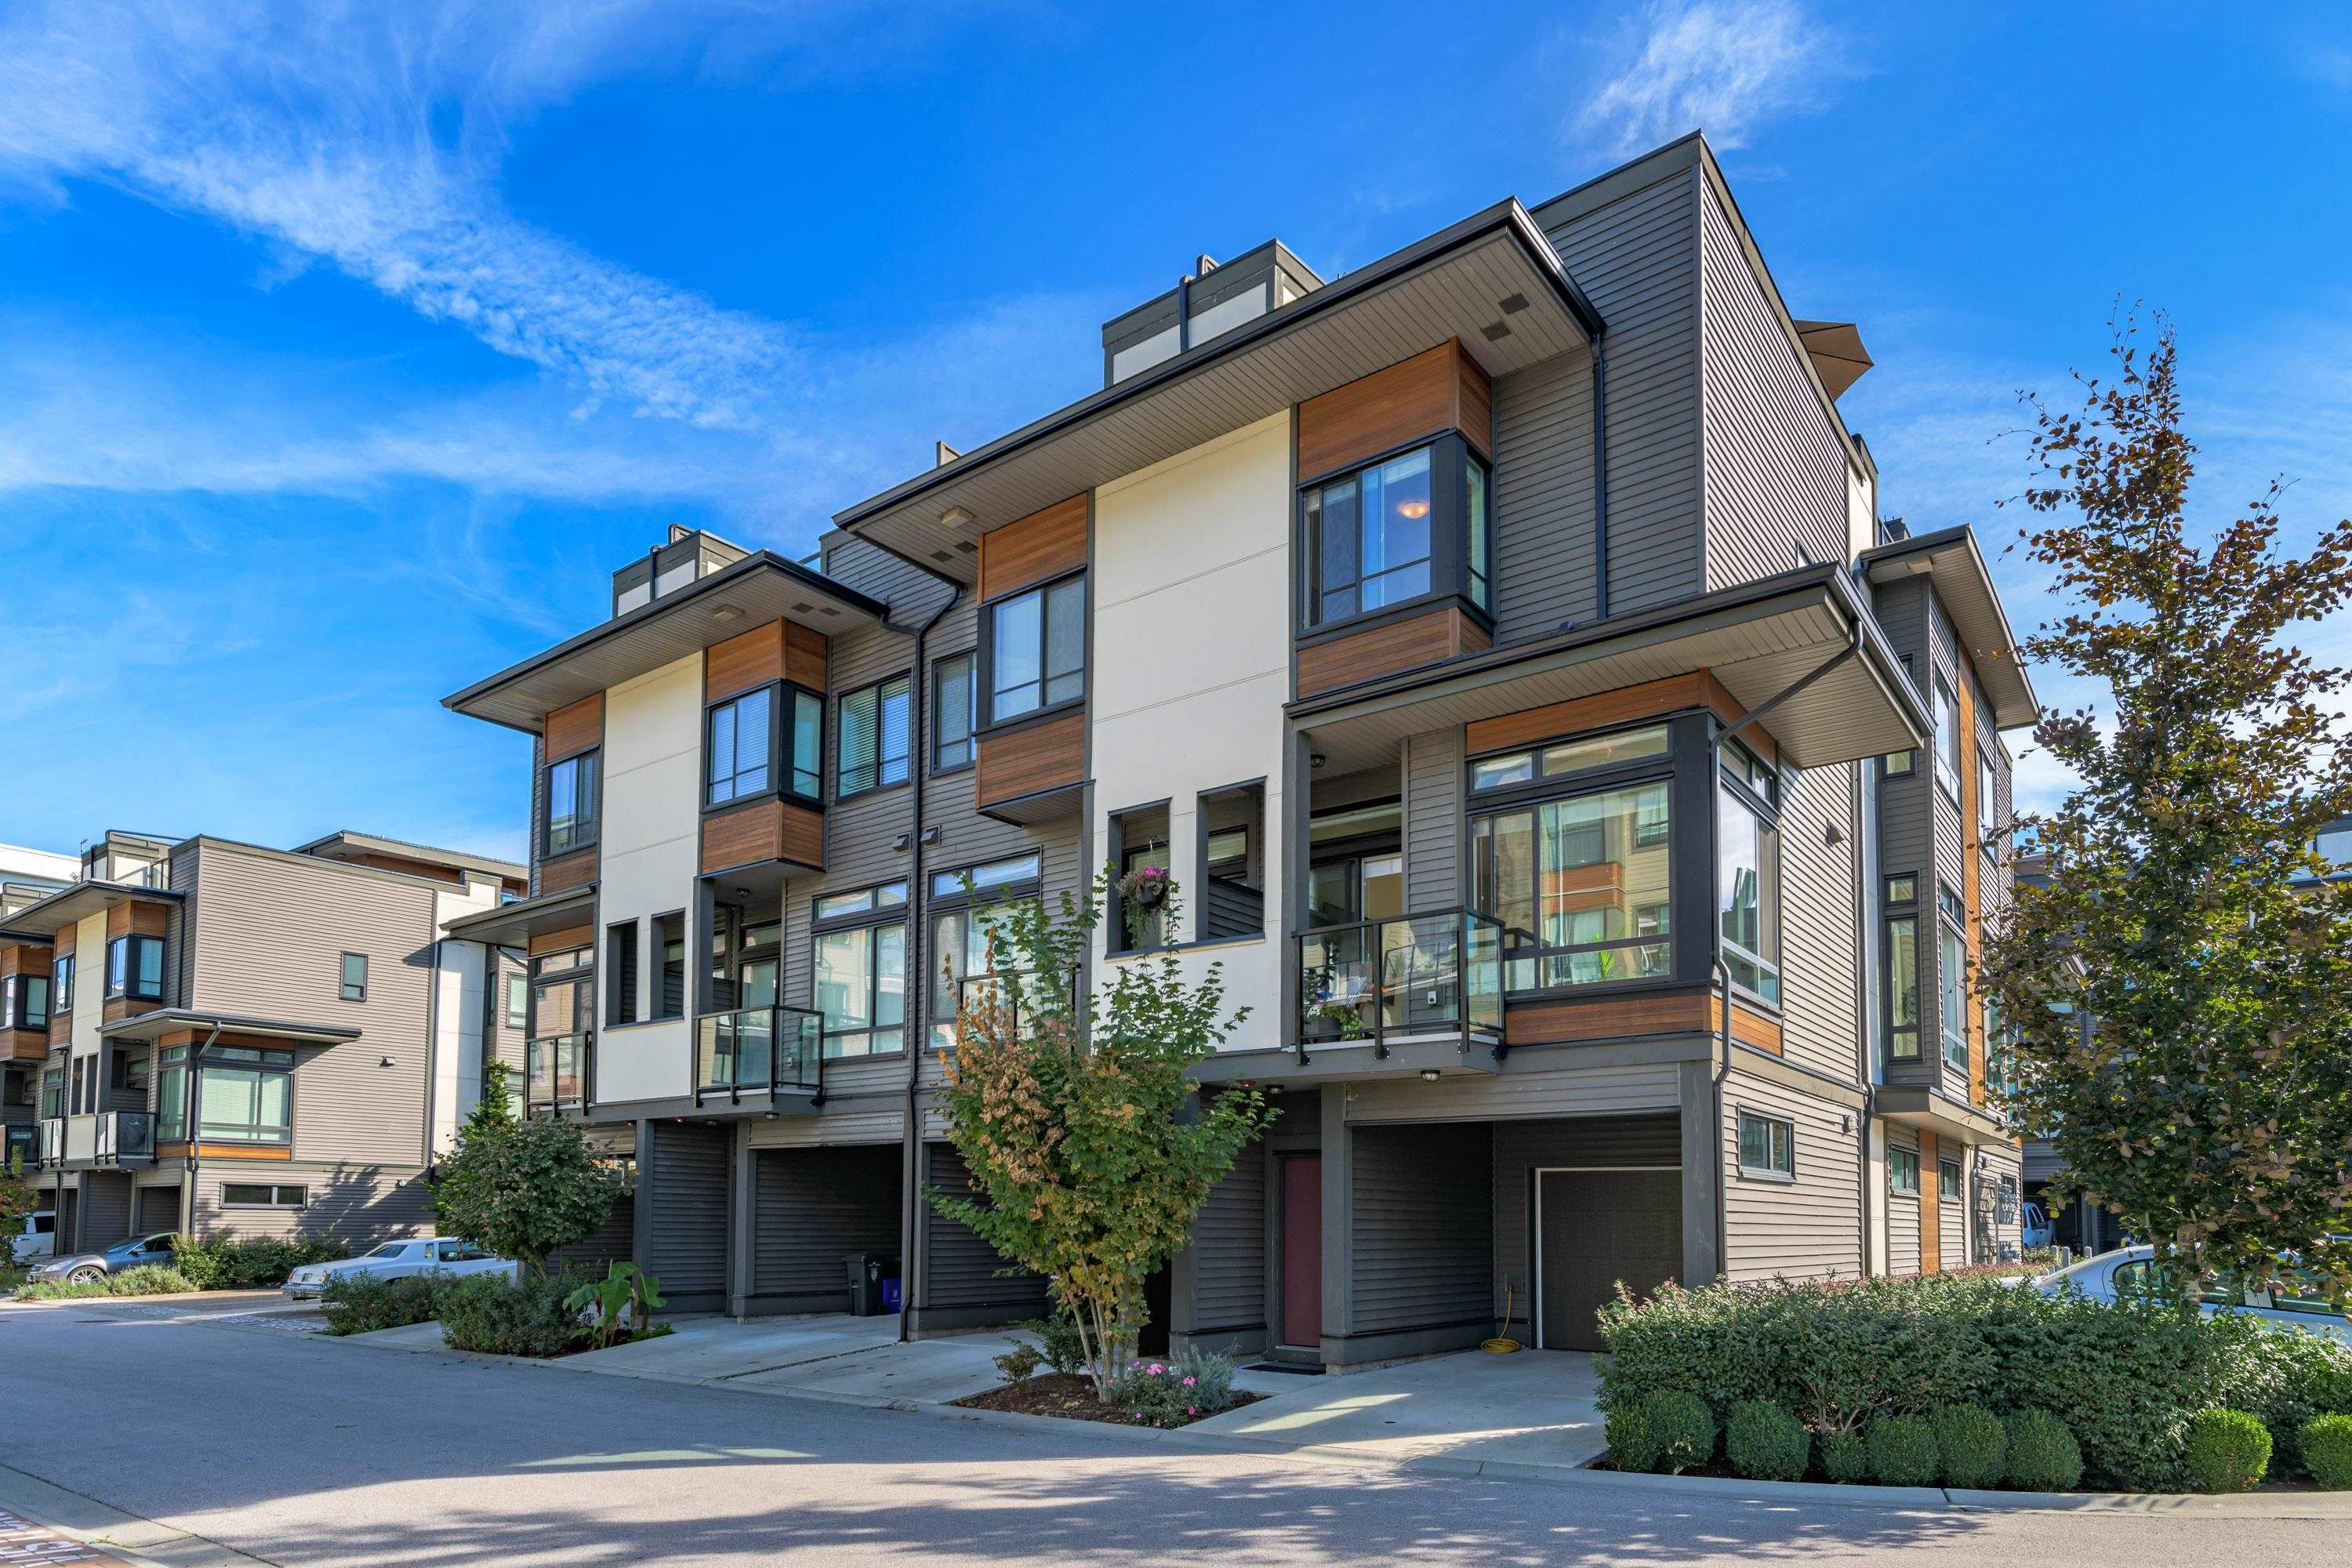 Main Photo: 51 7811 209 Street in Langley: Willoughby Heights Townhouse for sale : MLS®# R2620997